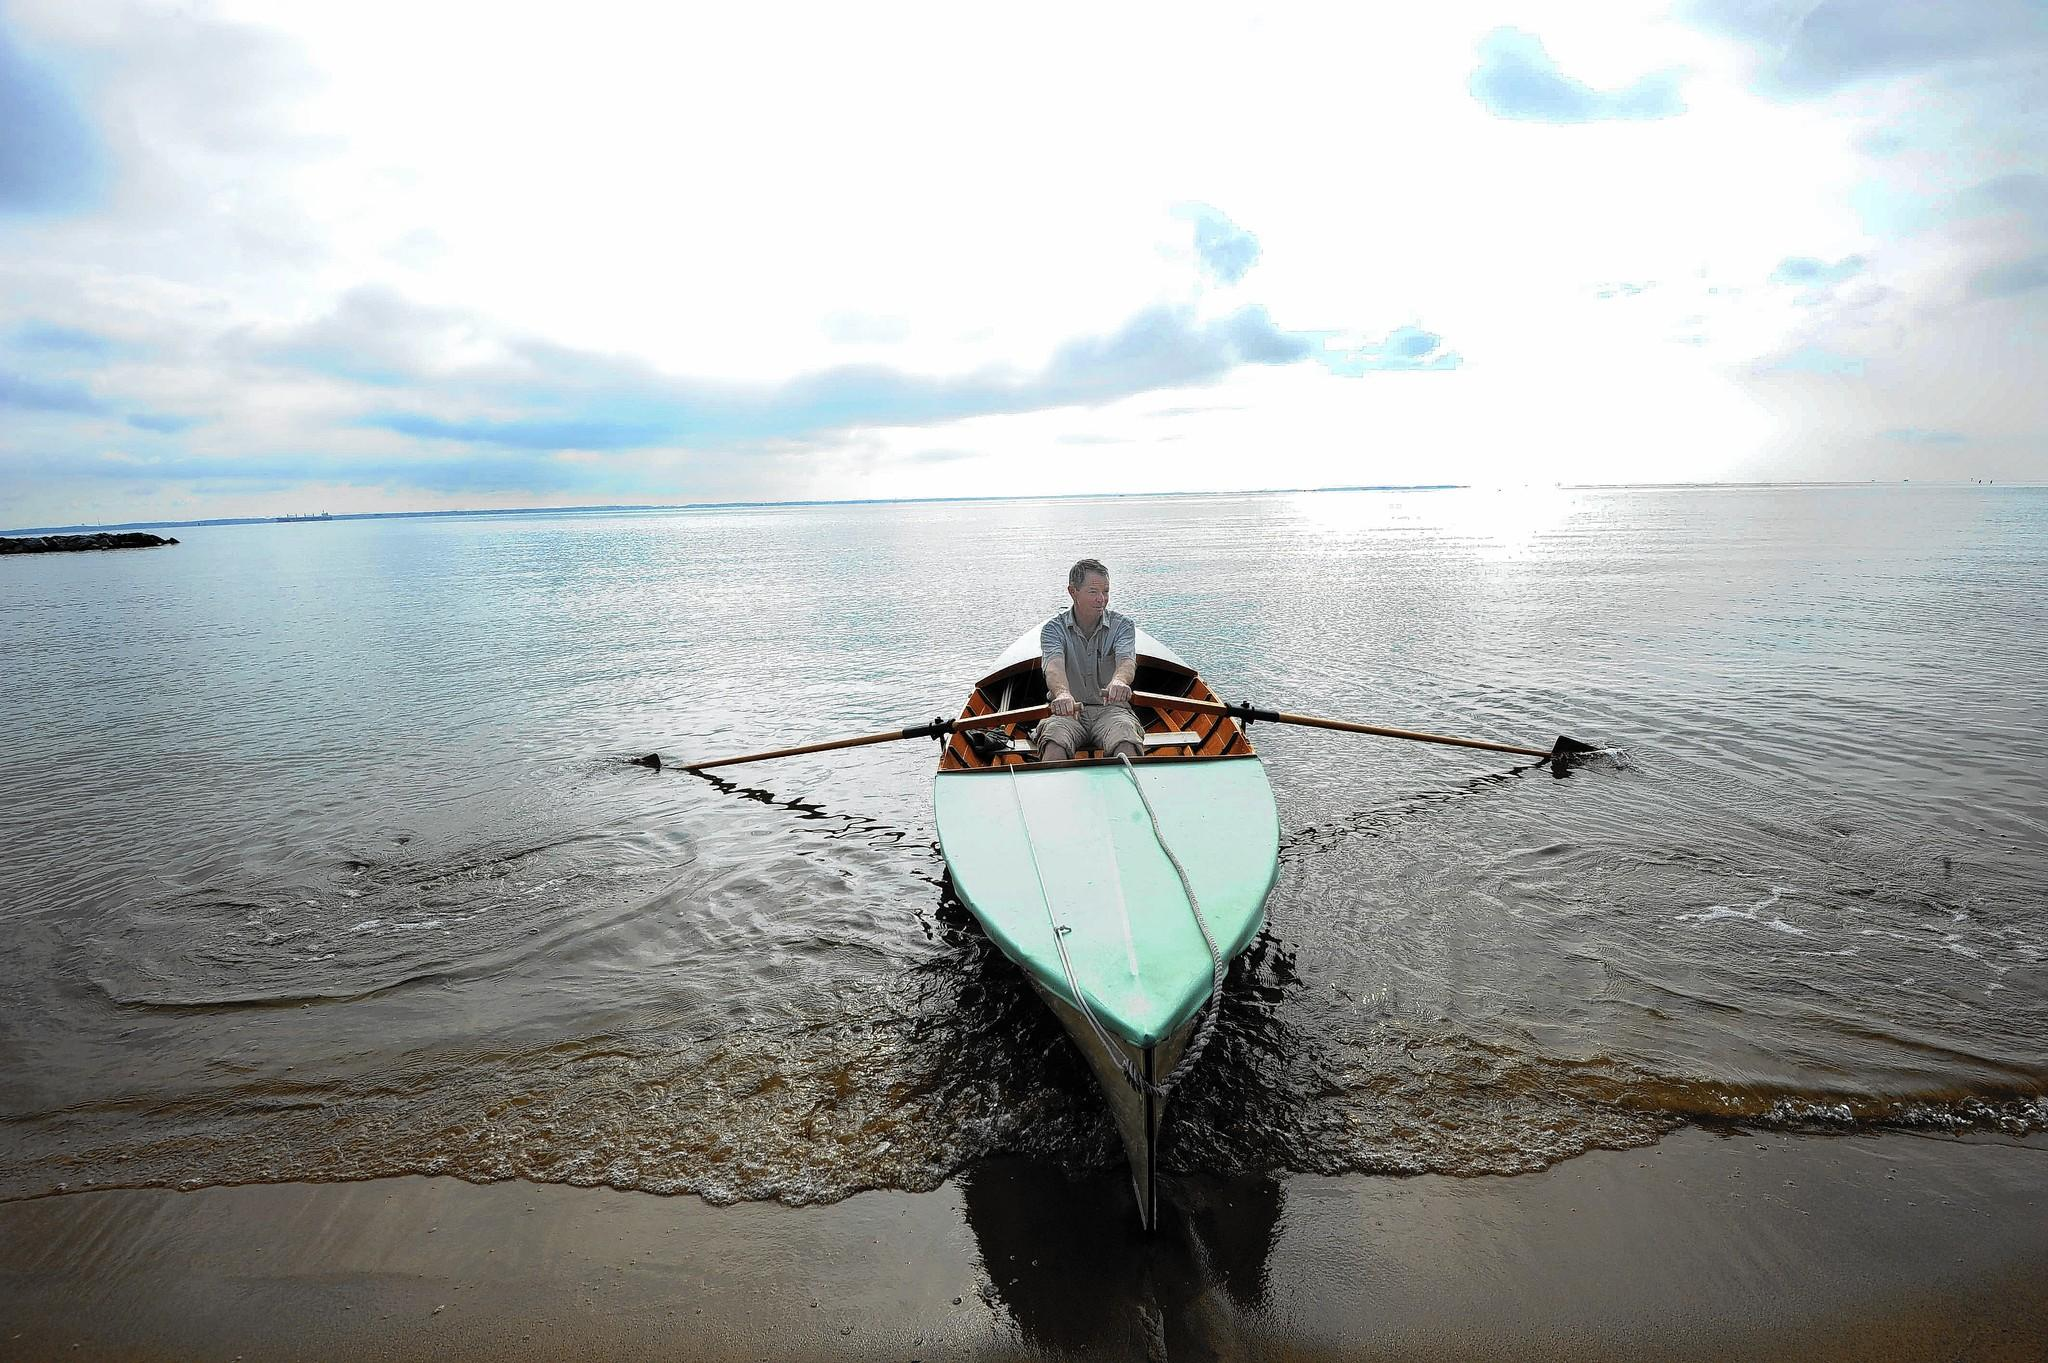 Andy Teeling in the waters behind the Chesapeake Bay Foundation near Annapolis, where he camped on his boat after finishing his rowing trip around the Delmarva Peninsula - after a 35-year hiatus.